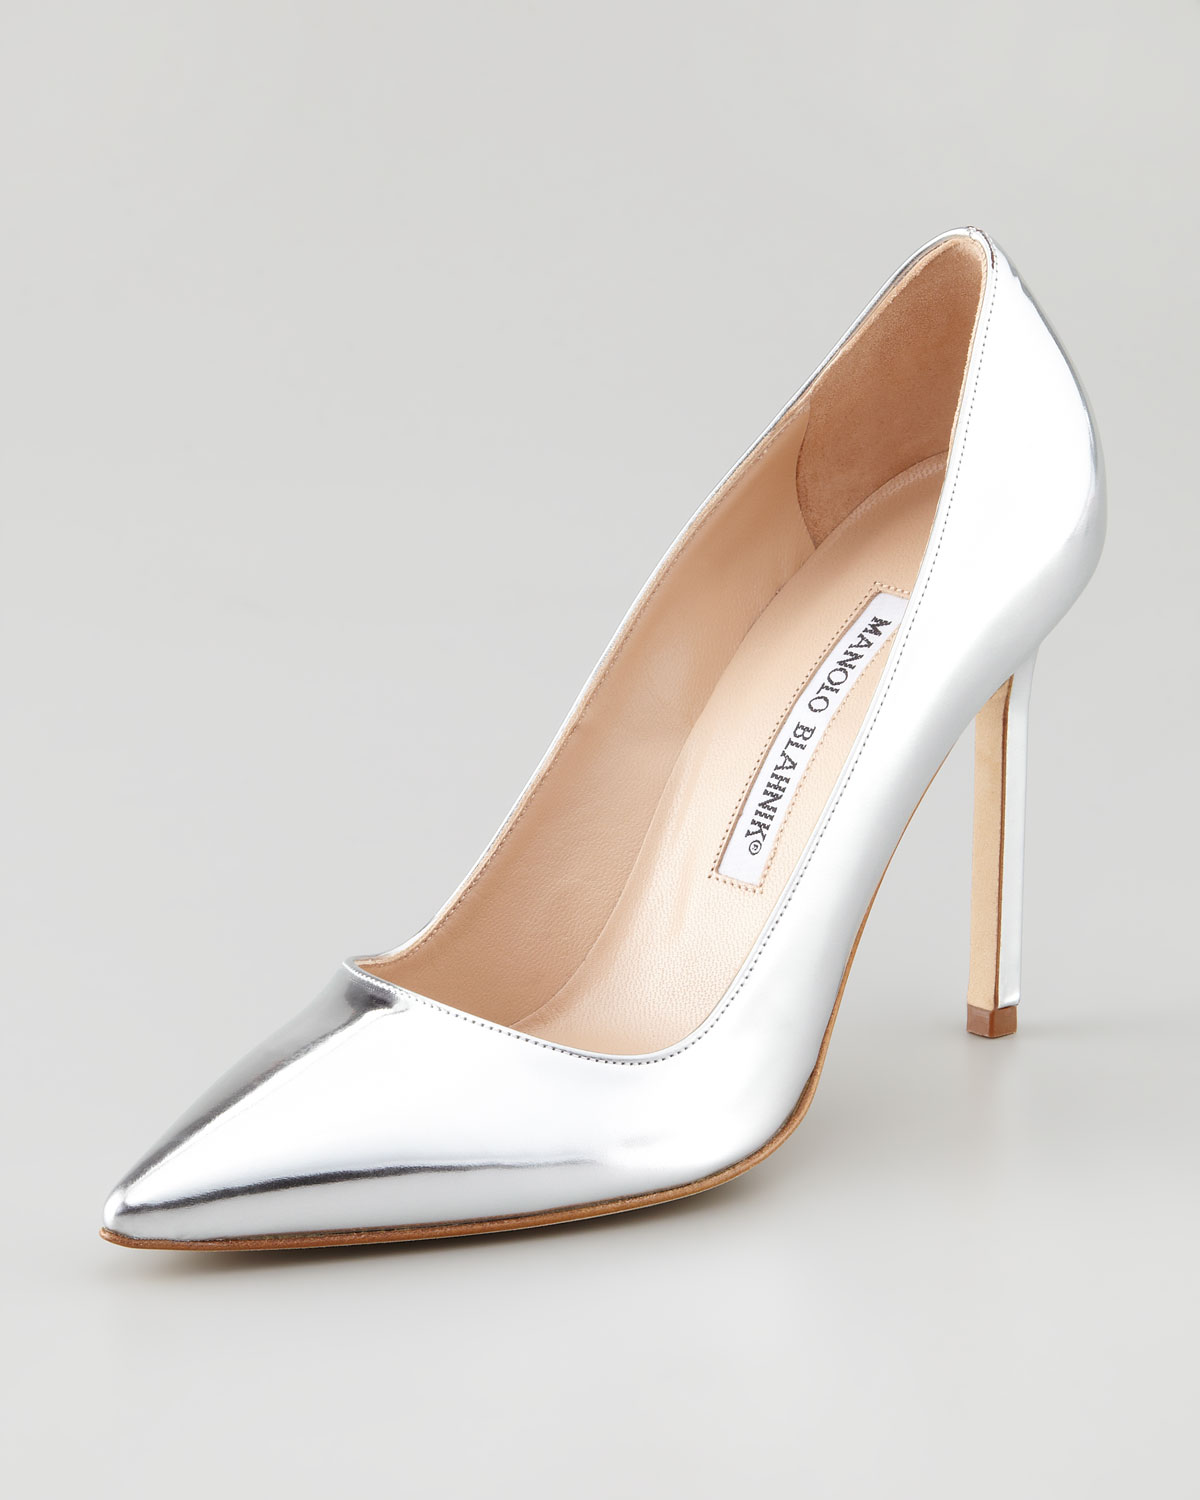 2c0186a04d9 Lyst - Manolo Blahnik Bb Pointtoe Metallic Pump Silver in Metallic